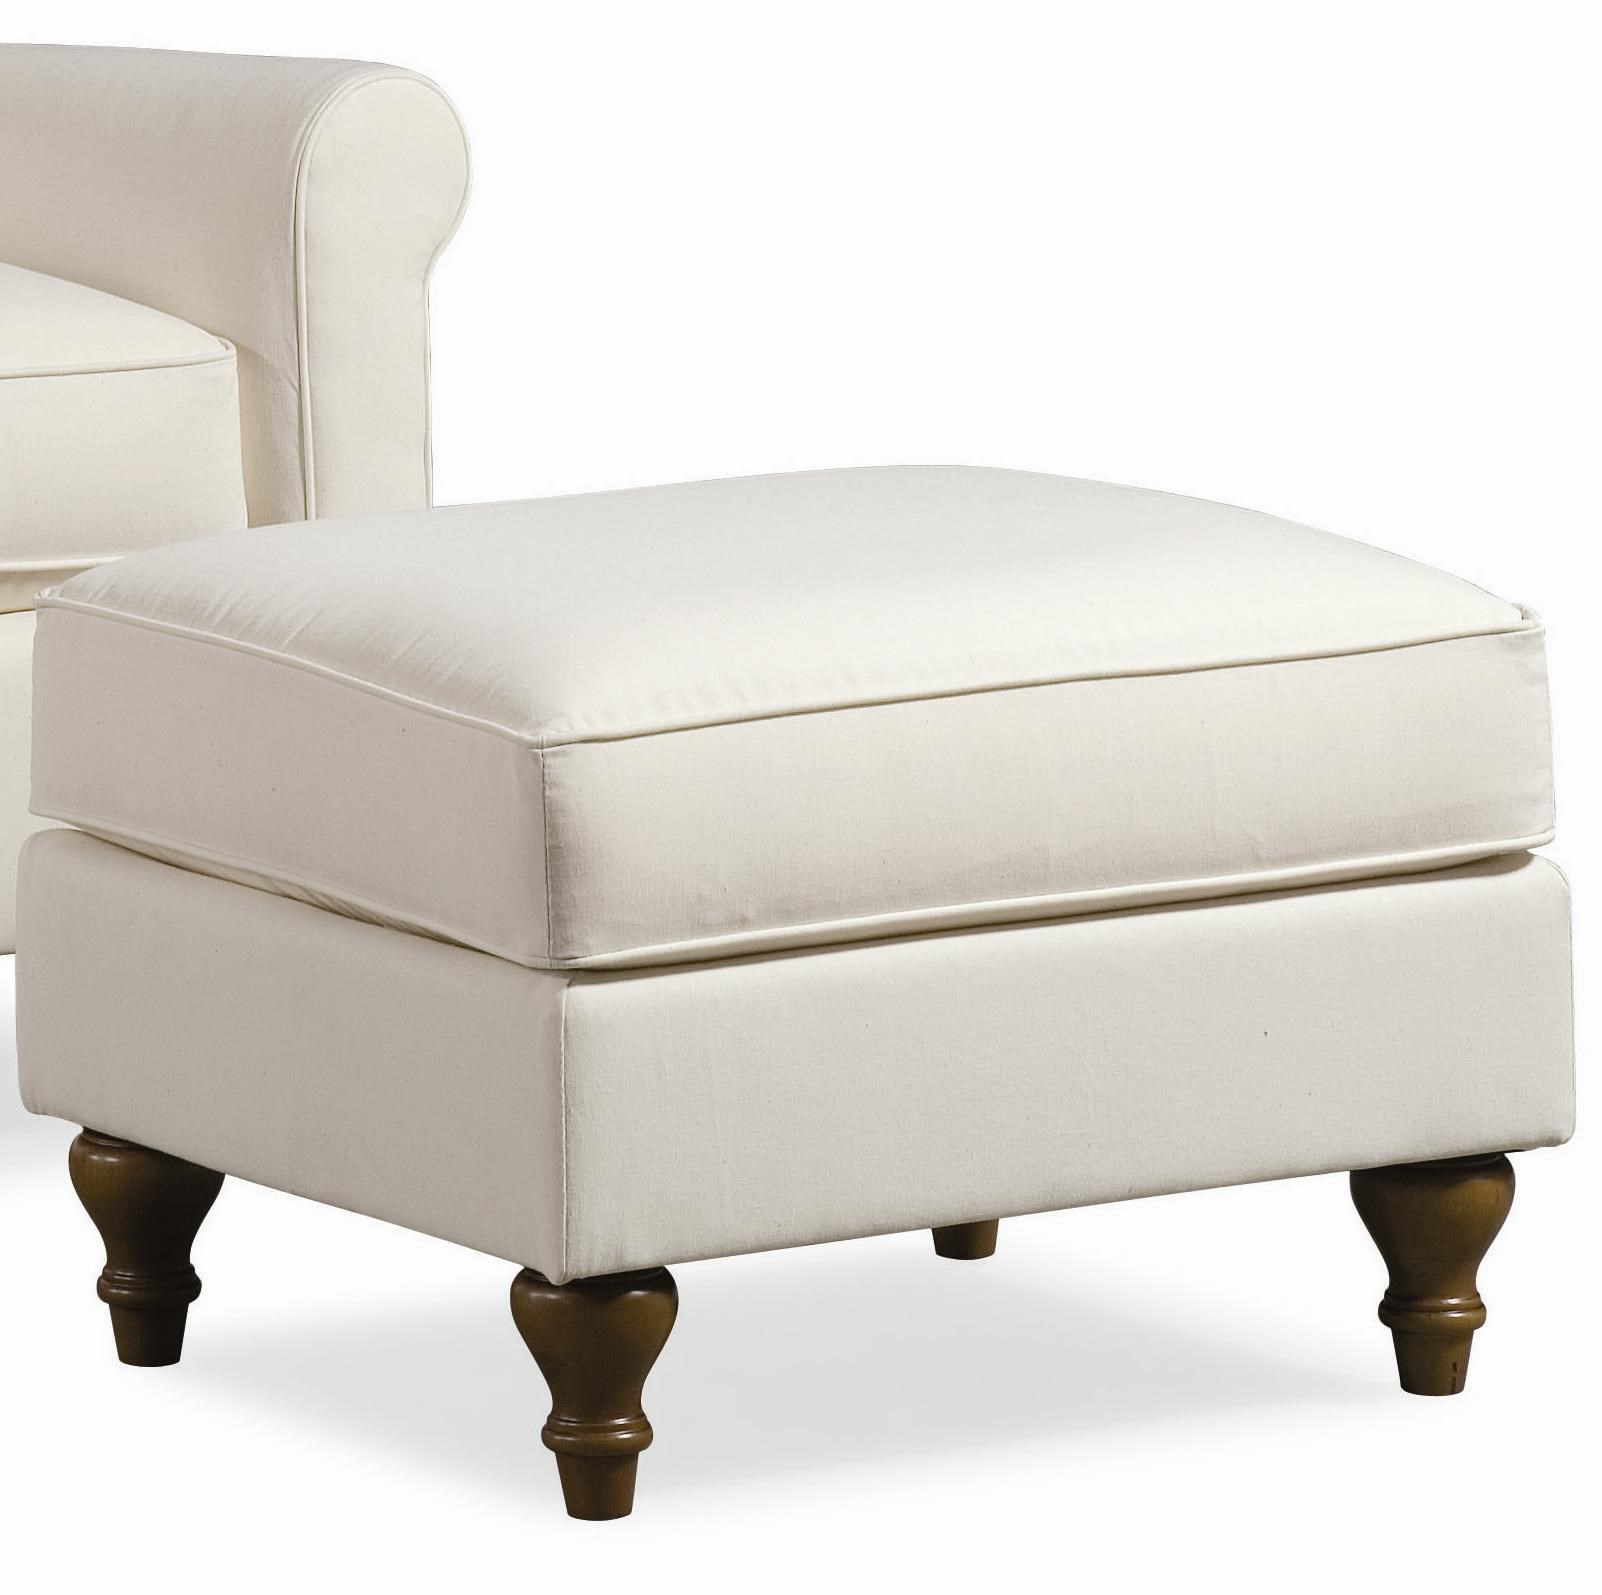 Thomasville® Upholstered Chairs And Ottomans Solitaire Upholstered Ottoman  With Turned Feet